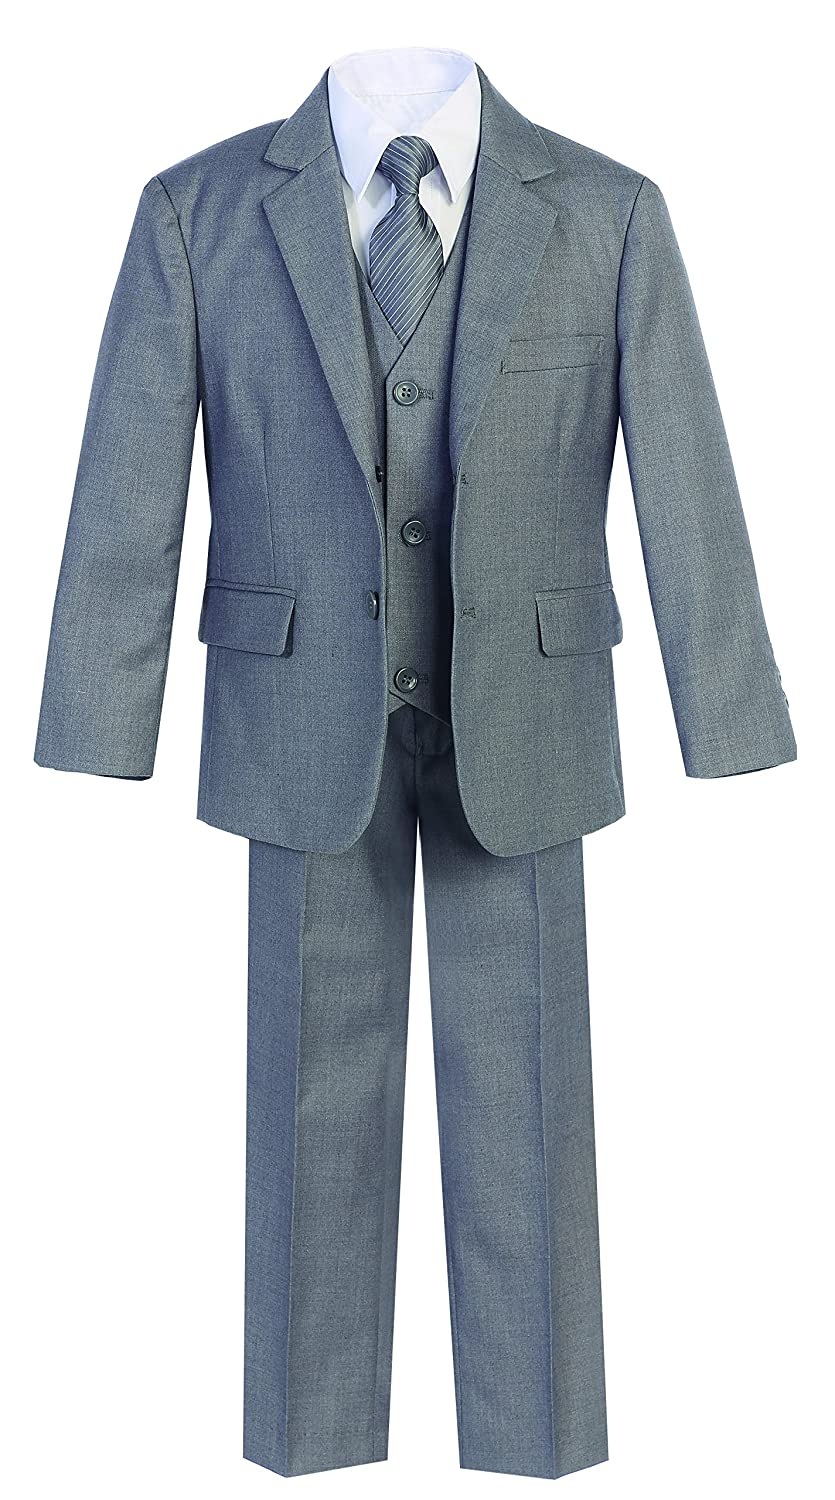 Magen Kids 5 PcS Boys Formal L Gray Suit, Vest, Pant, Dress Shirt, Tie Set Size 2-18 BS-US-MN-B18-L Gray